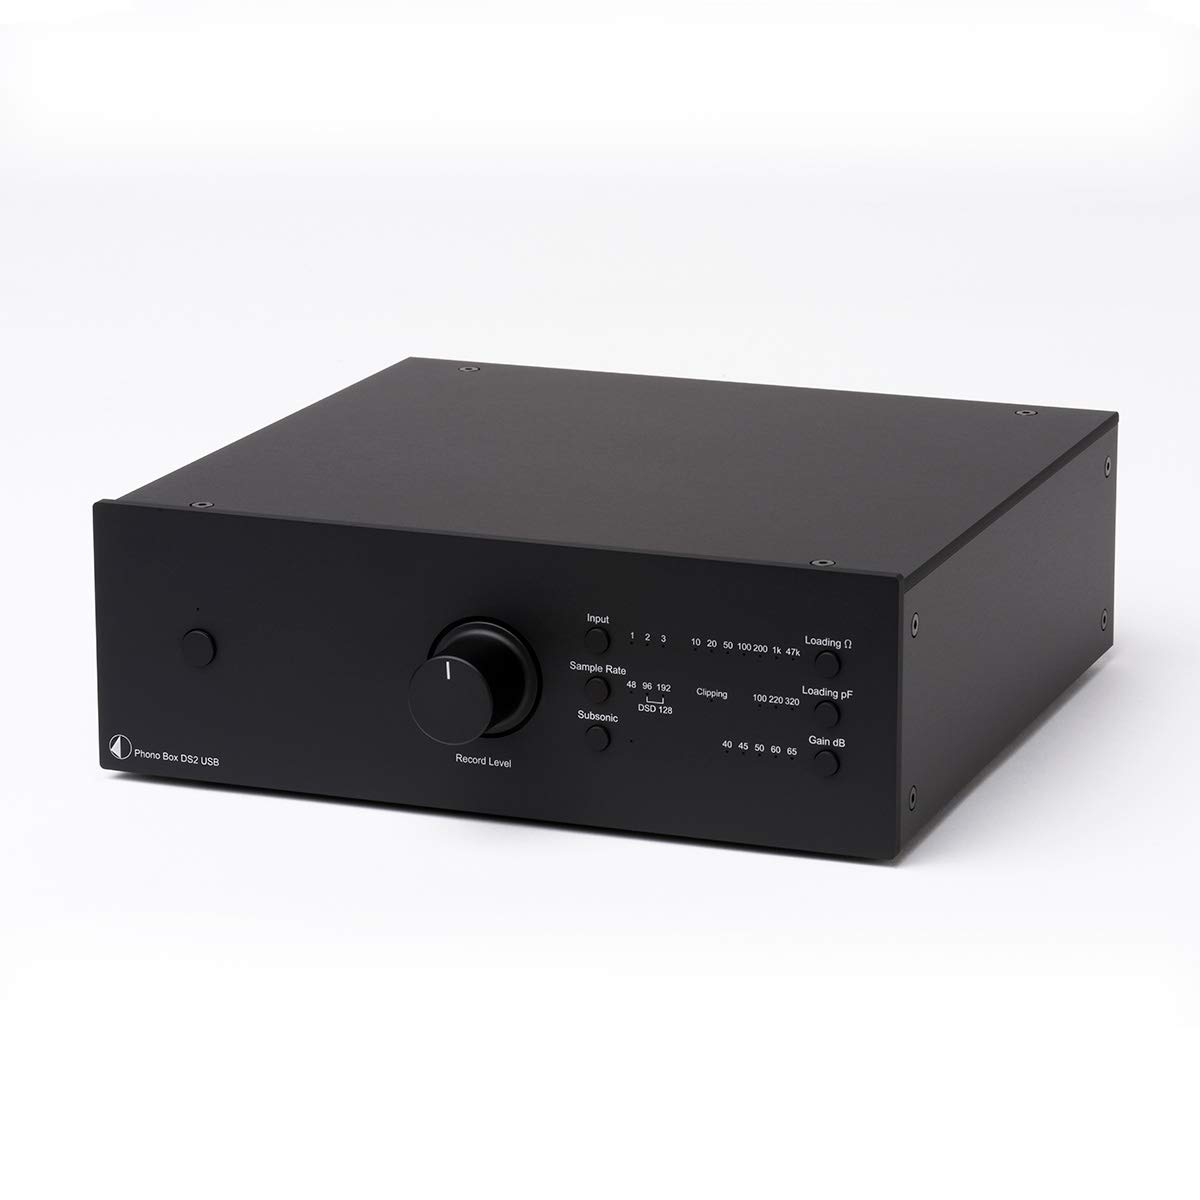 Pro-Ject Phono Box DS2 USB Phono Preamplifier - Black